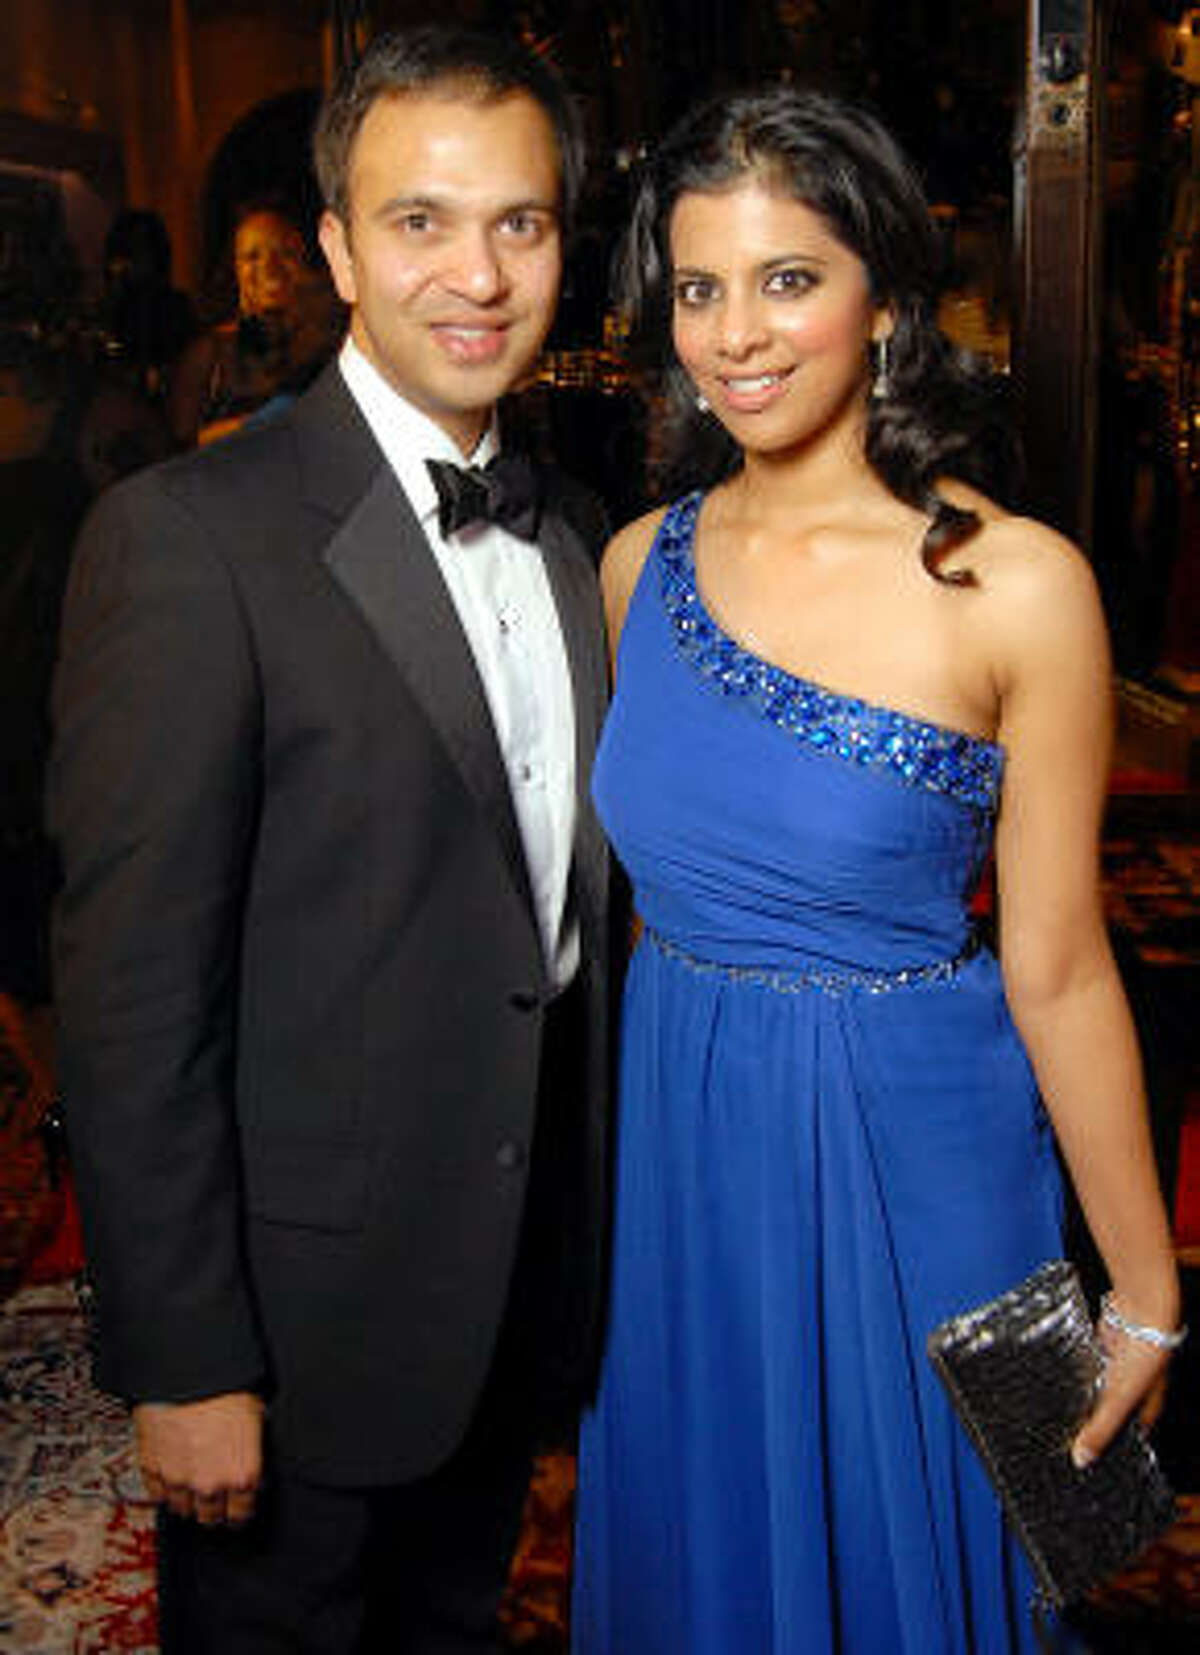 Ilyas Colombowala and Elizabeth Abraham